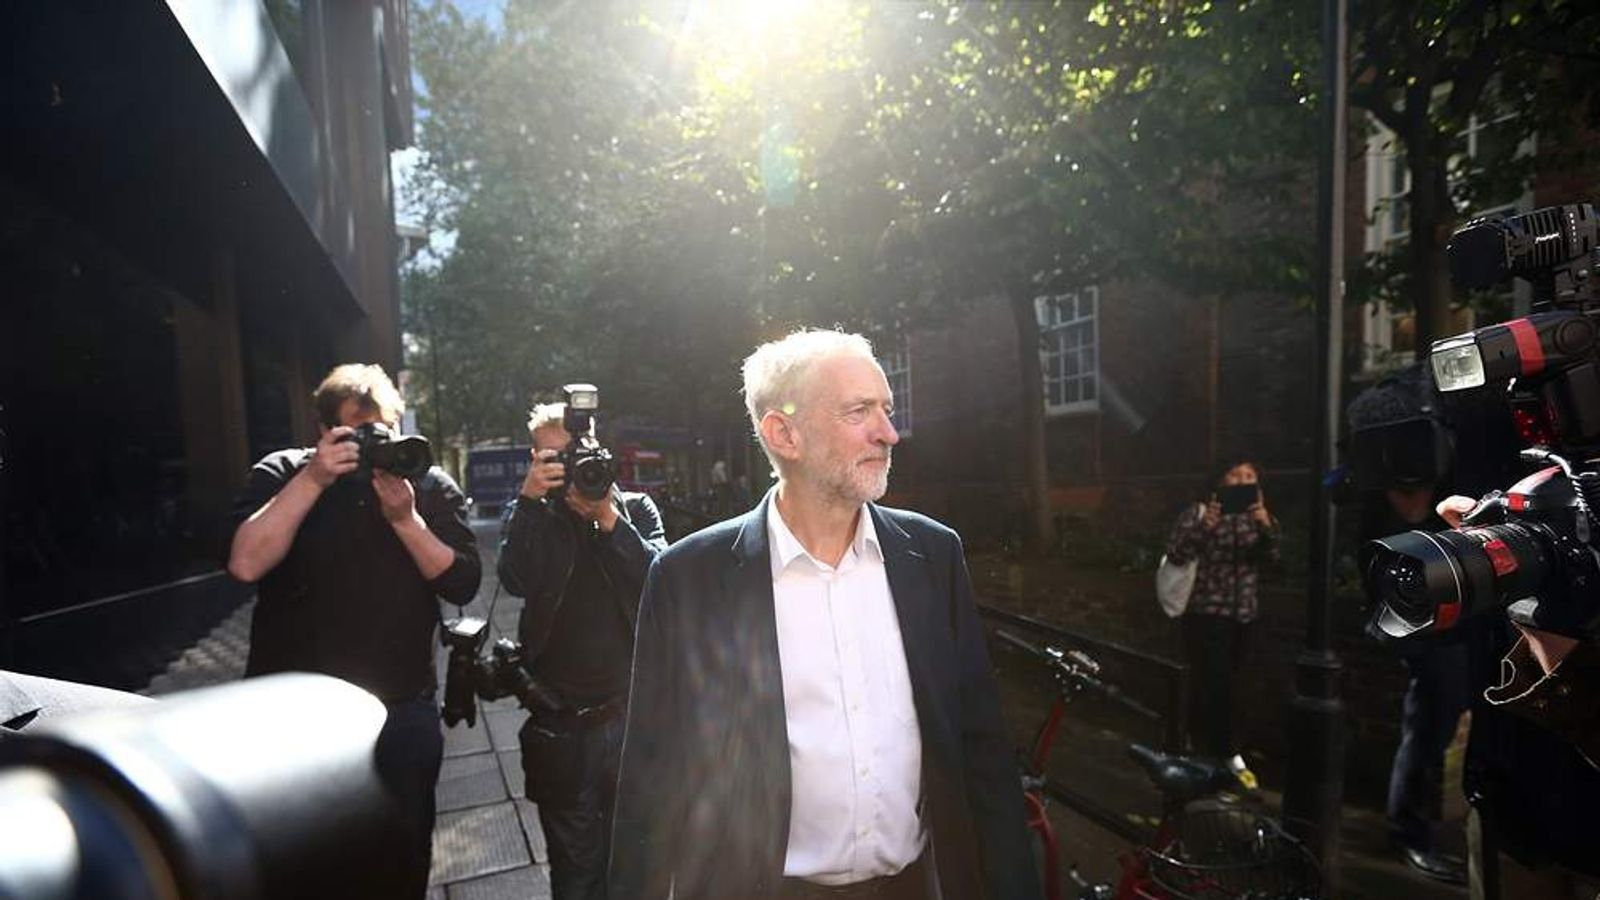 Newly elected Labour Party leader Jeremy Corbyn leaves the Labour Party headquarter